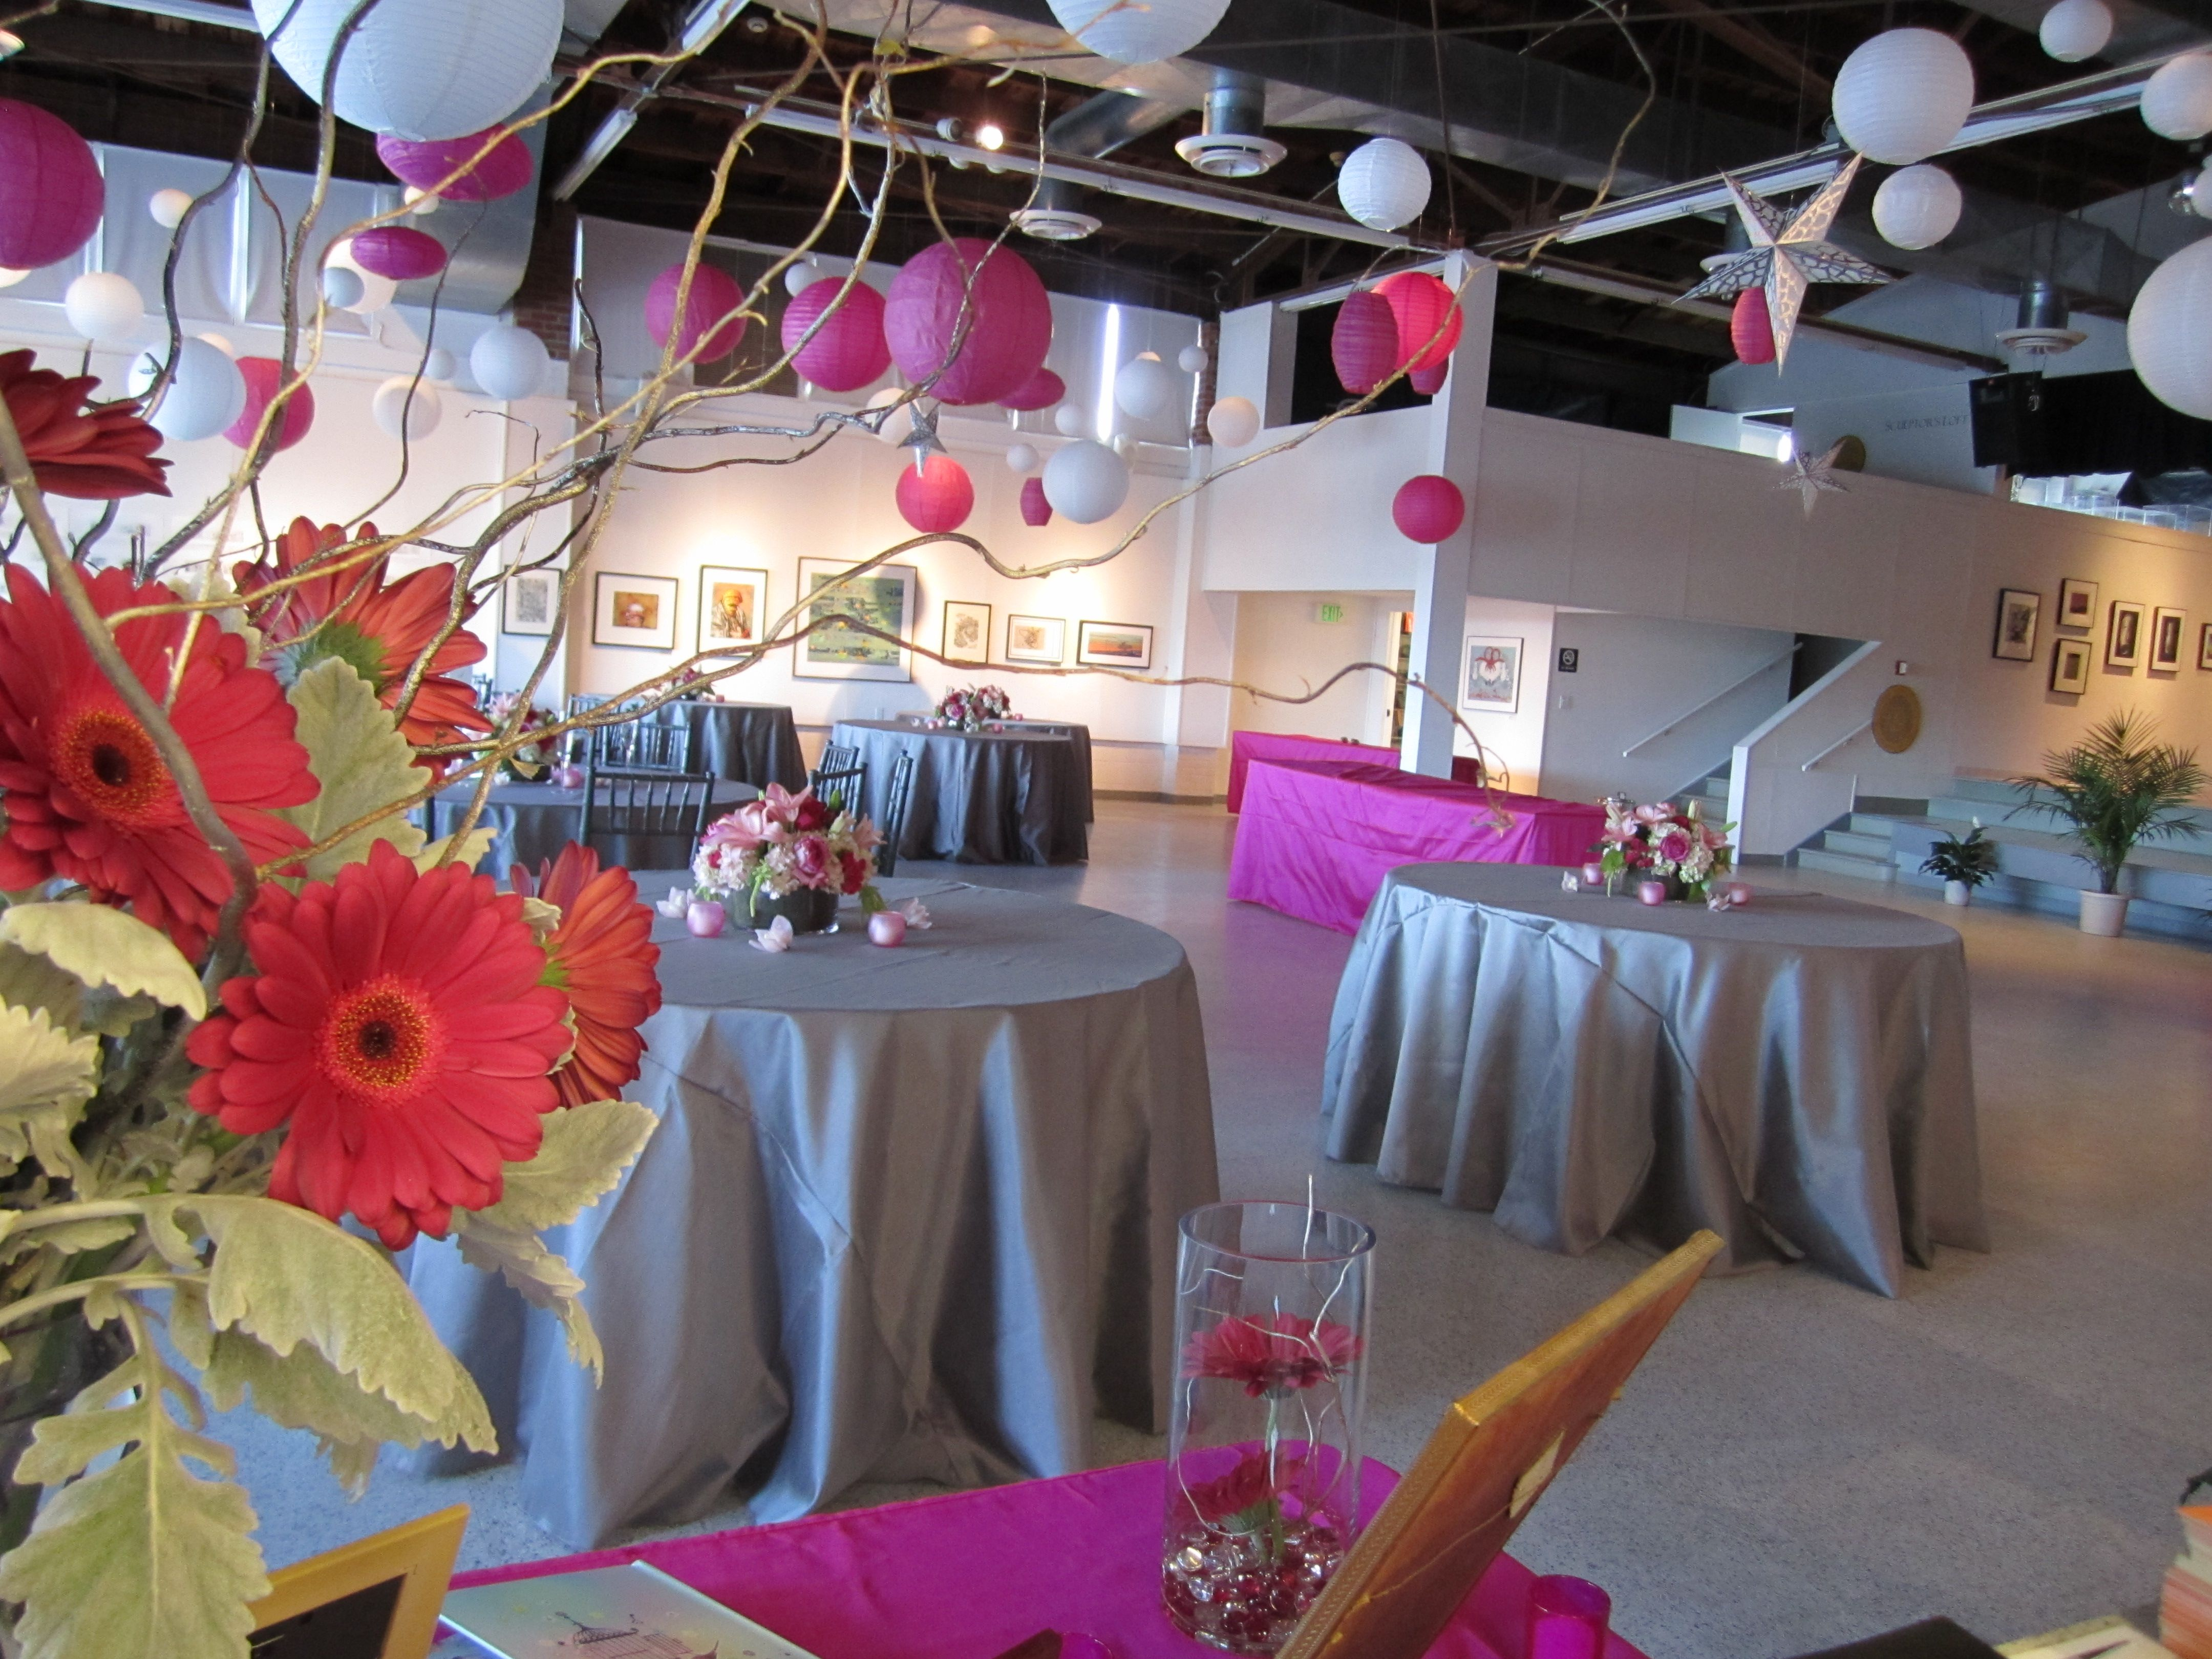 magenta themed party decor at the lbi foundation